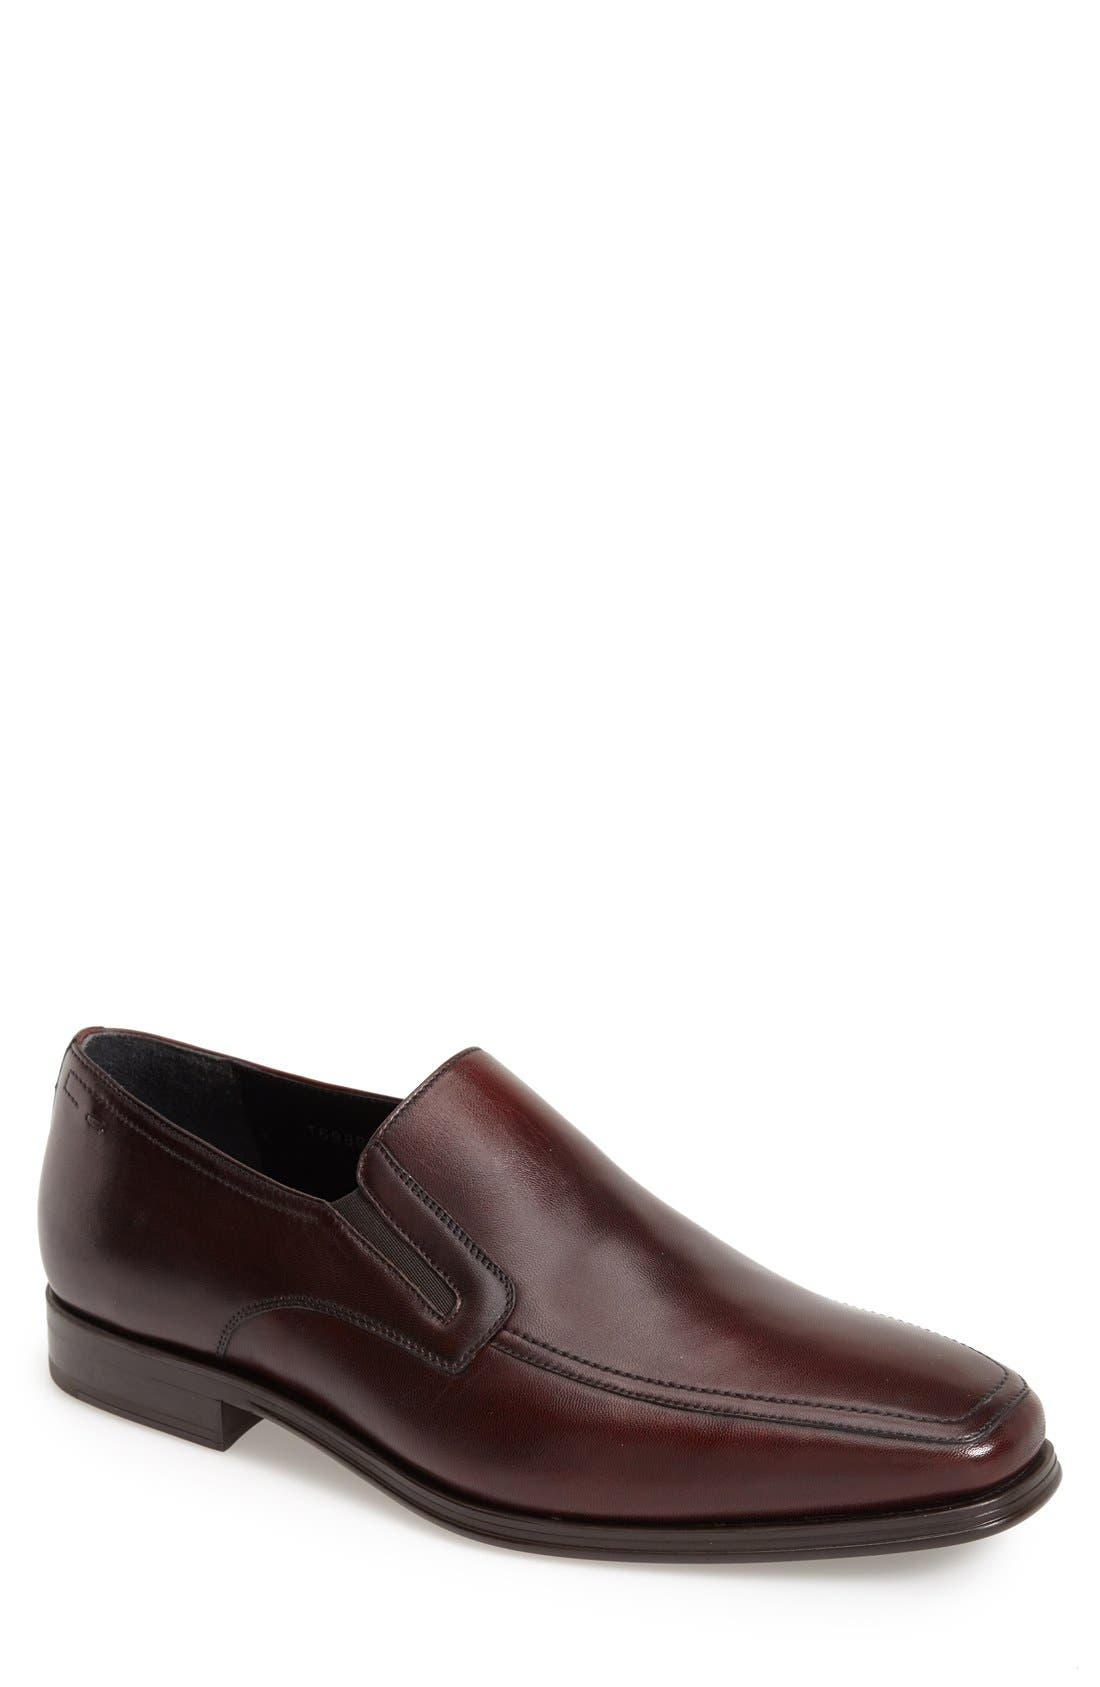 MAGNANNI Men'S Antonio Leather Loafers in Brown